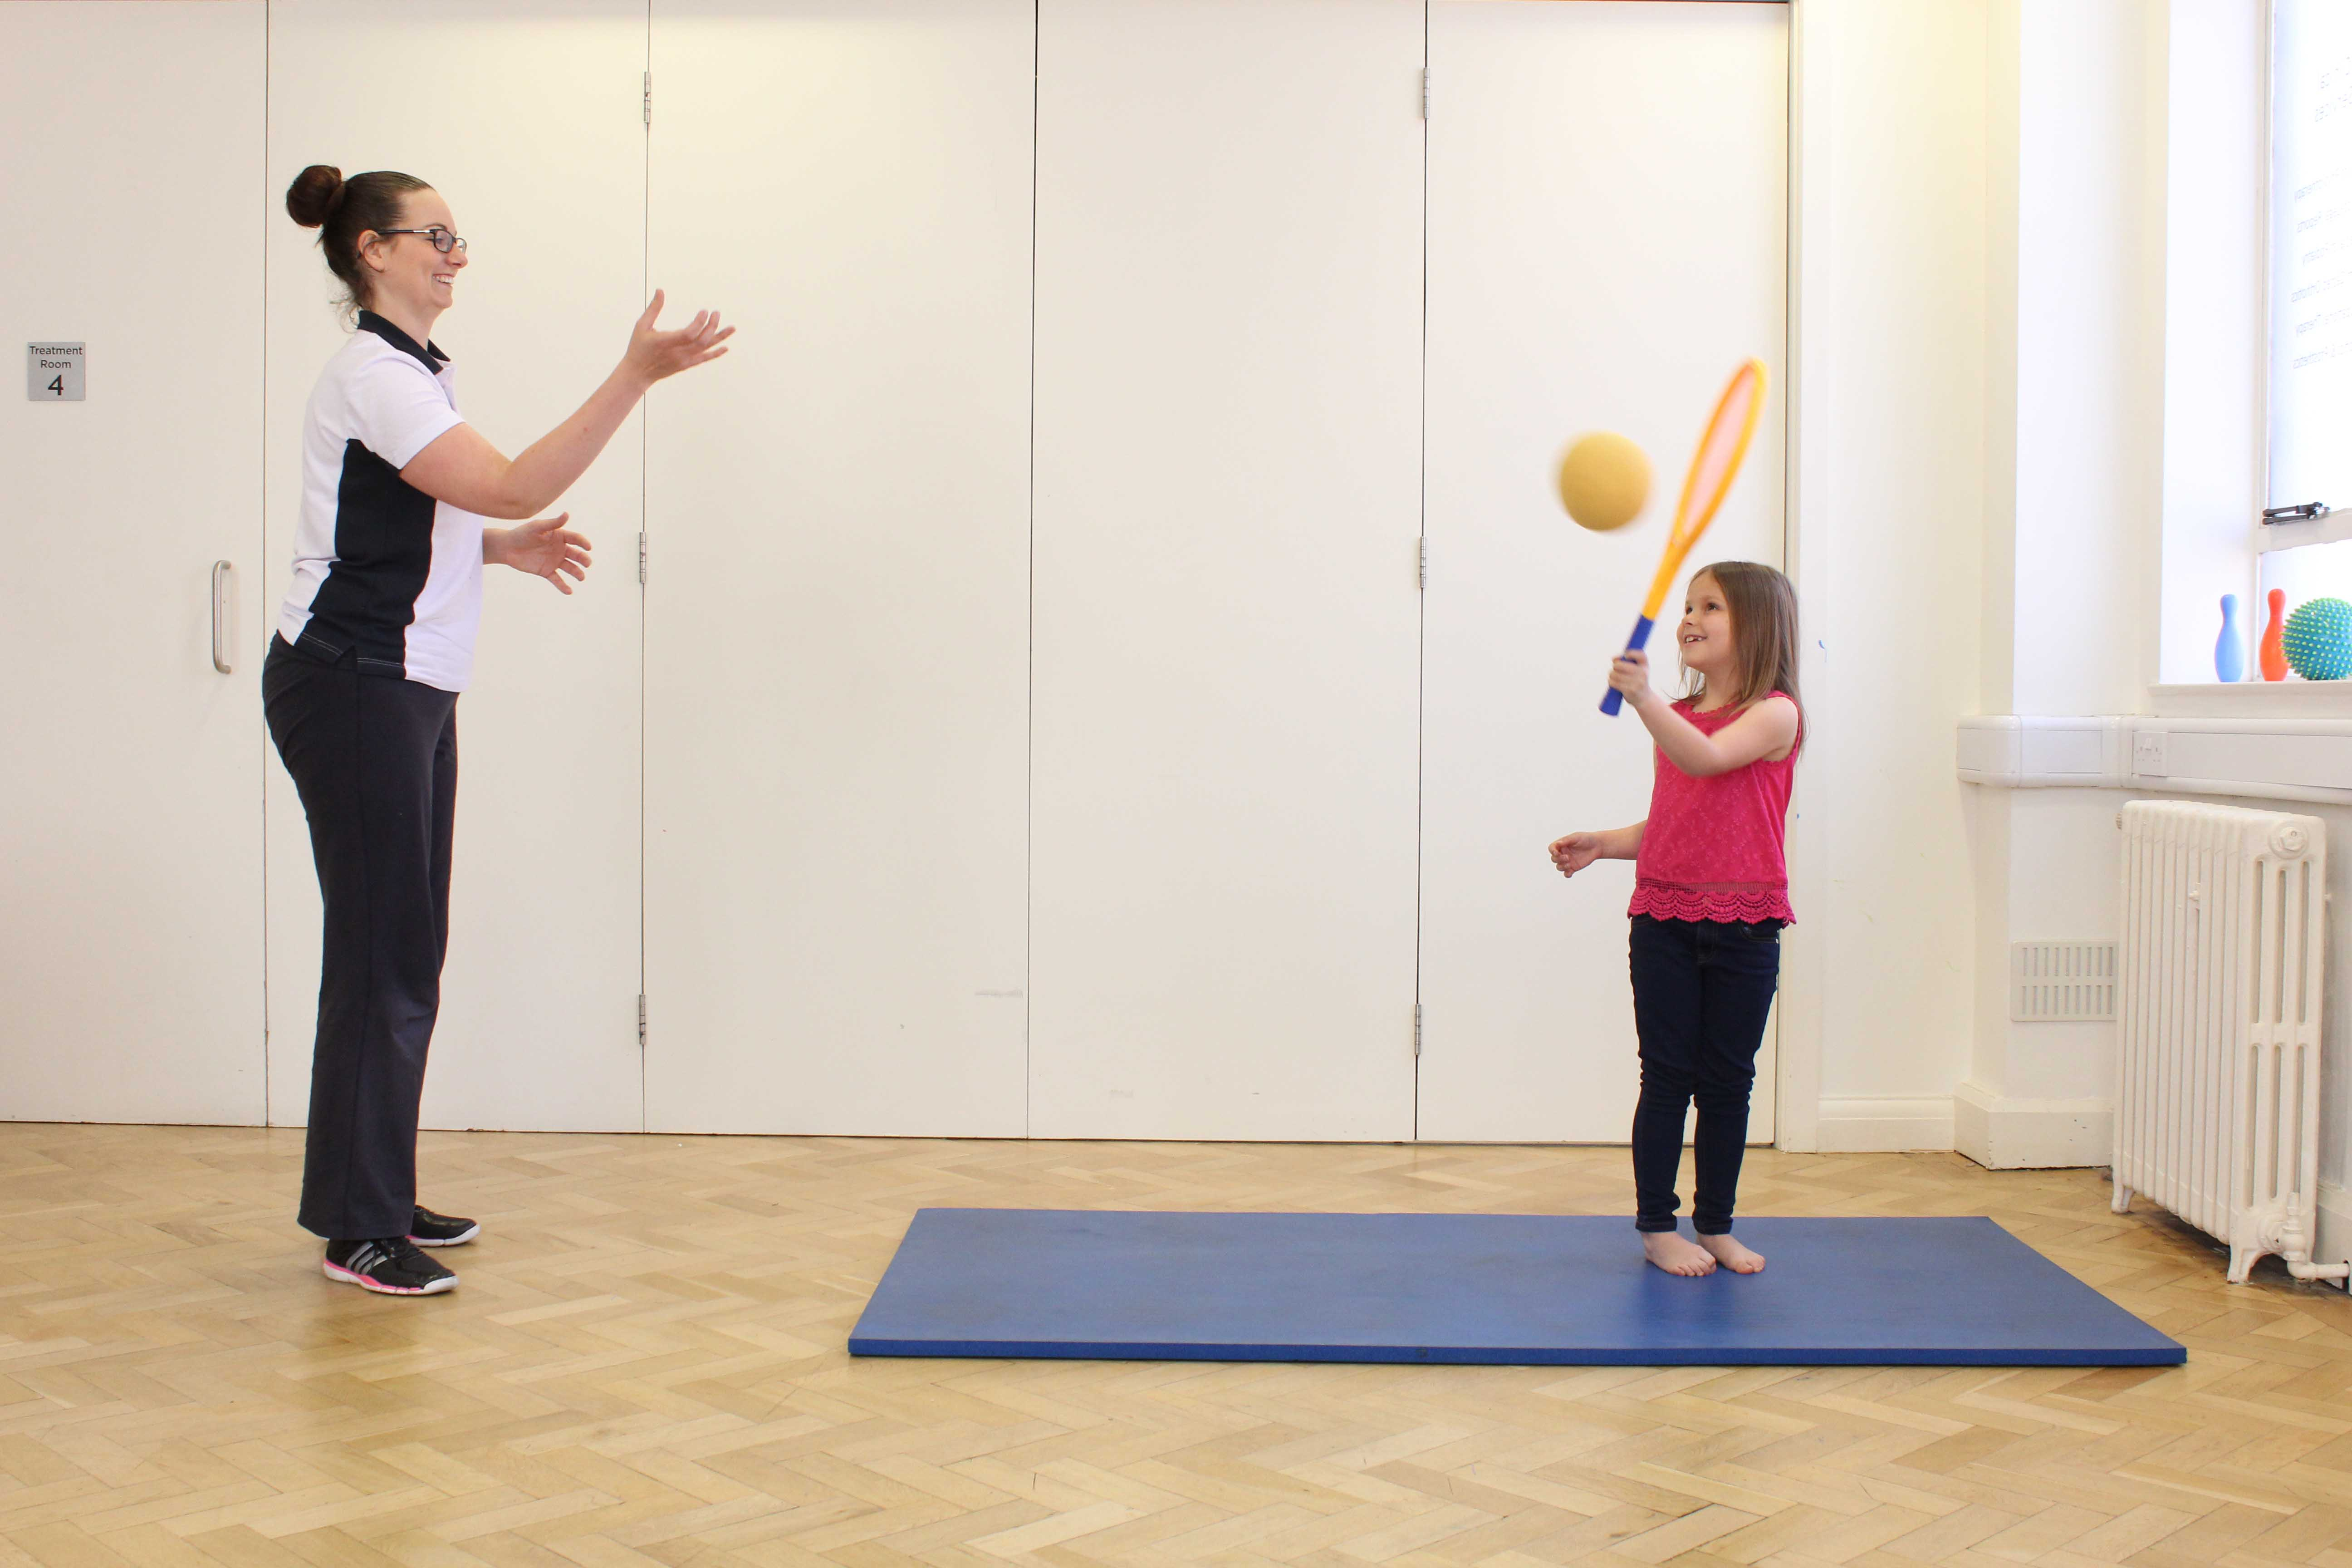 Improving patient awareness of body position through activity